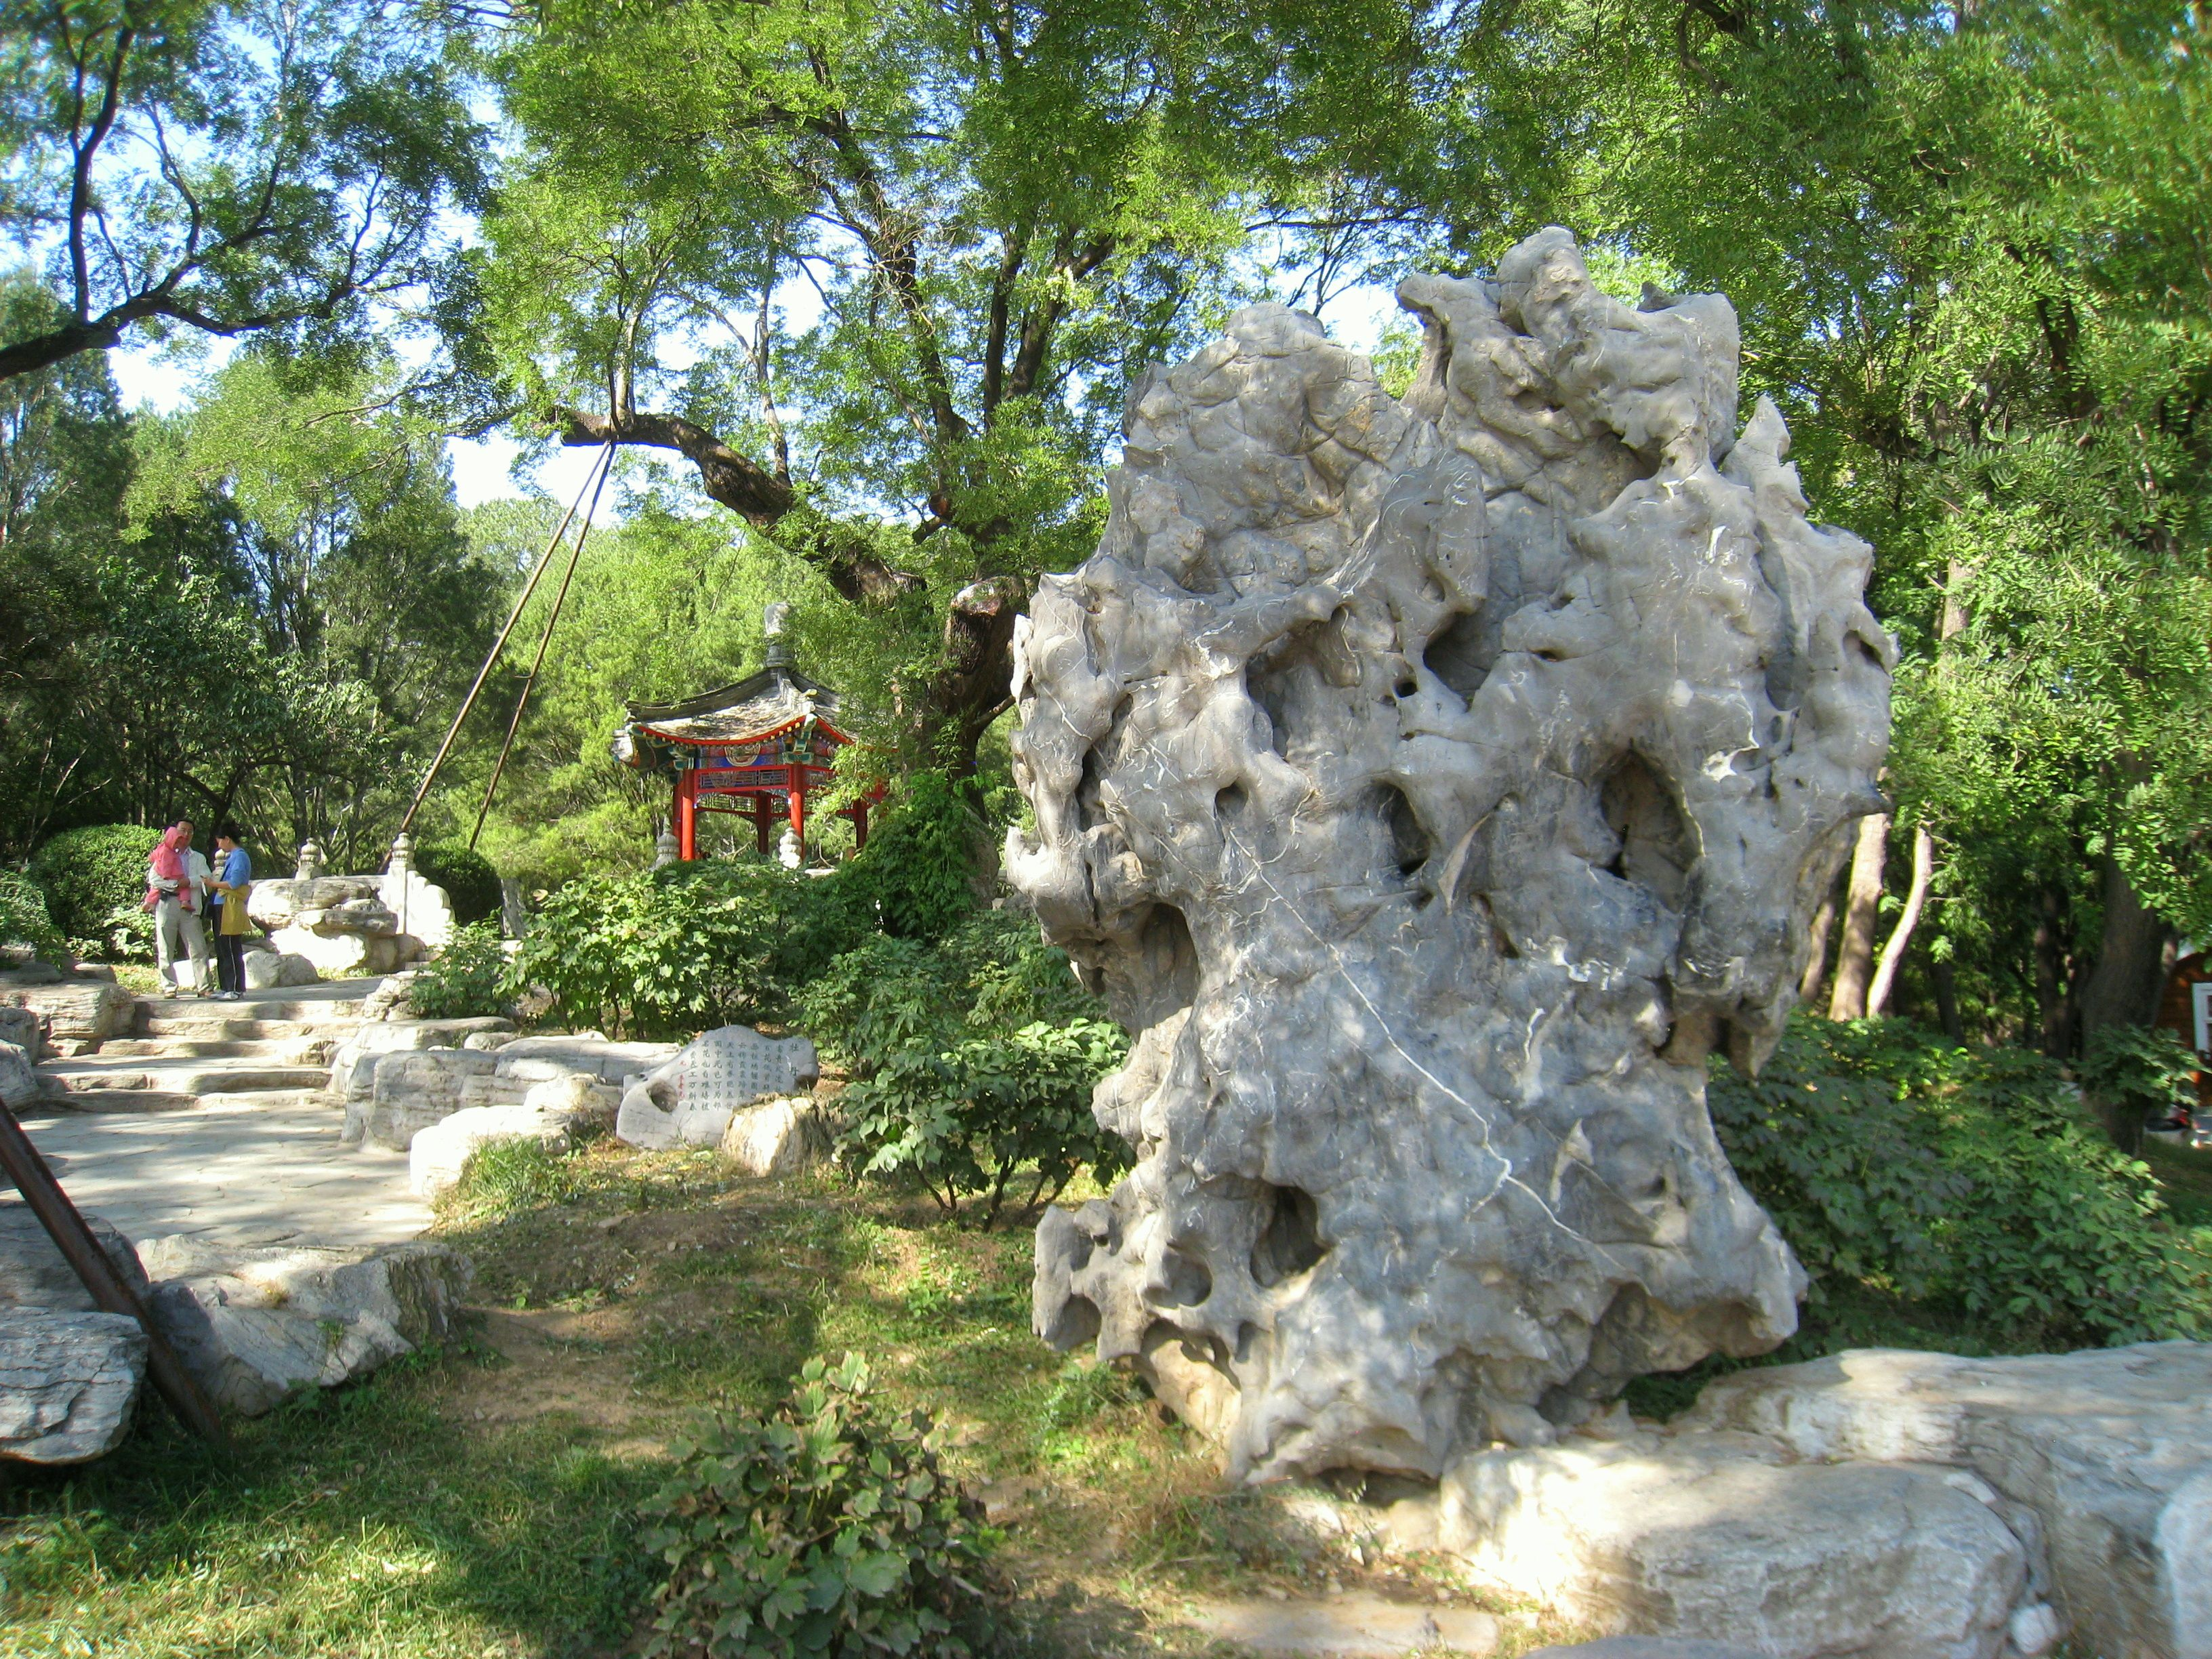 The Sichuanese garden or BaShu Garden is one of the major